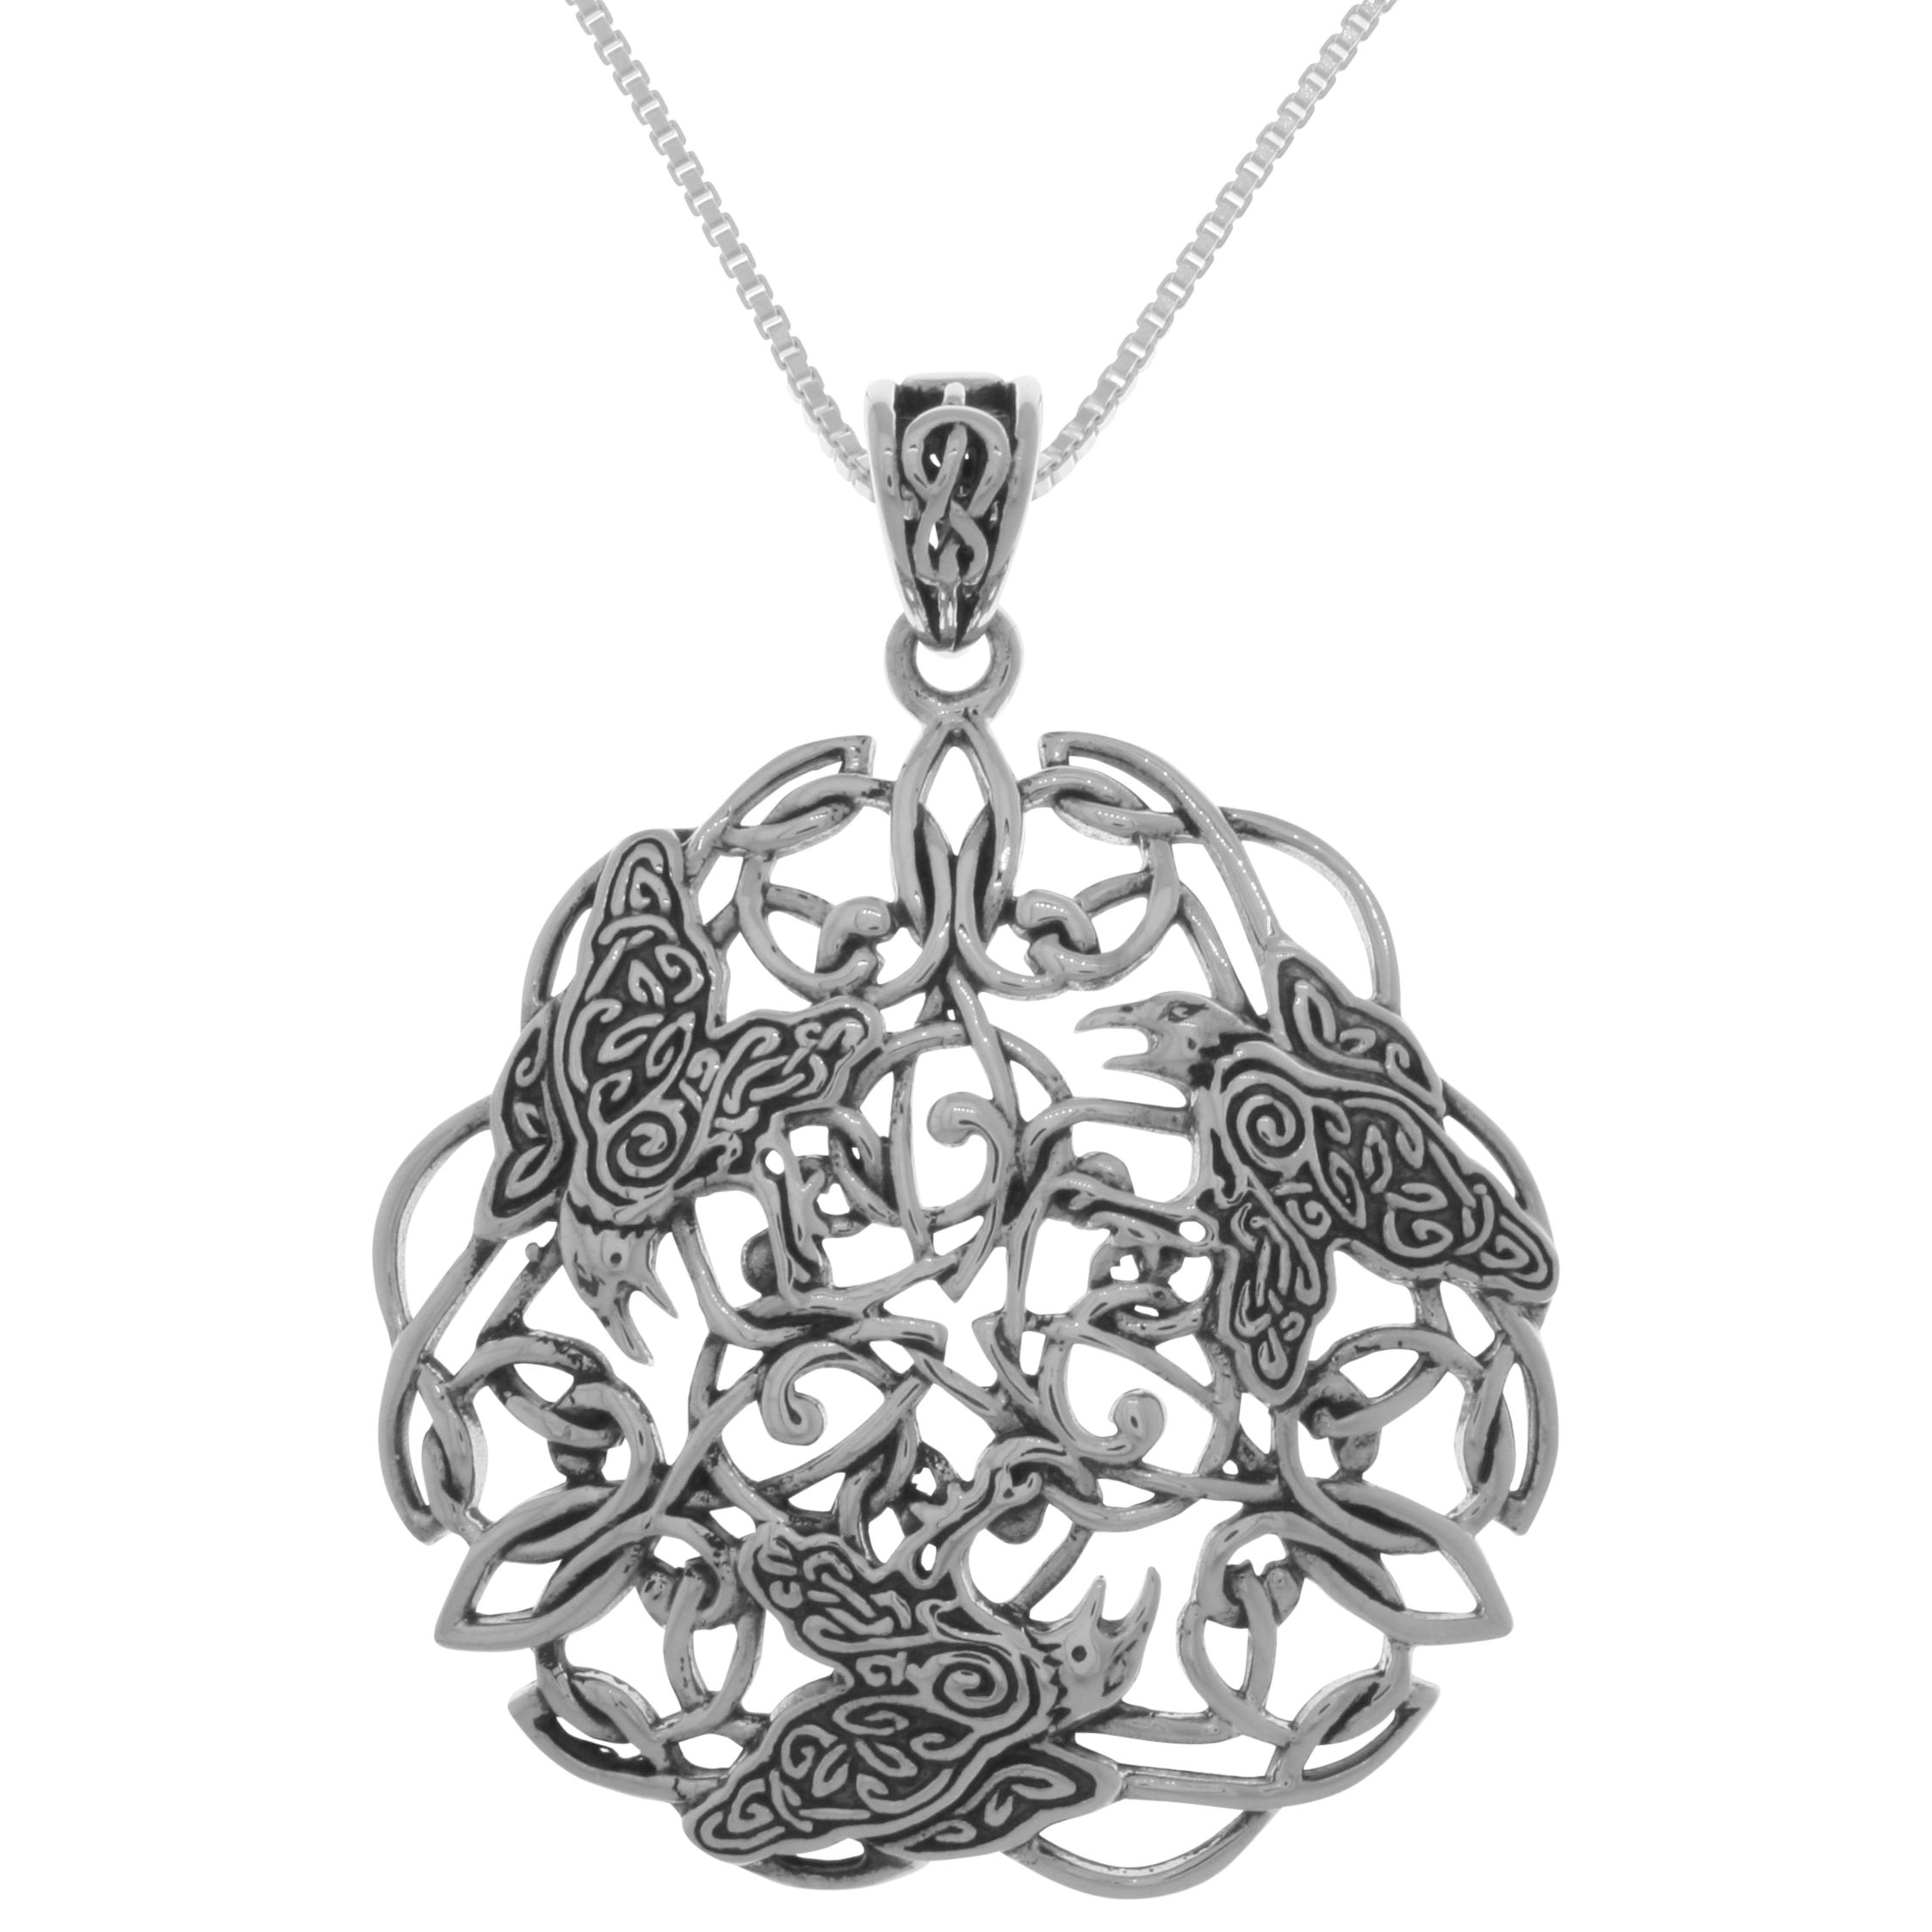 works celtic triskele knot products steampunk pendant jewelry